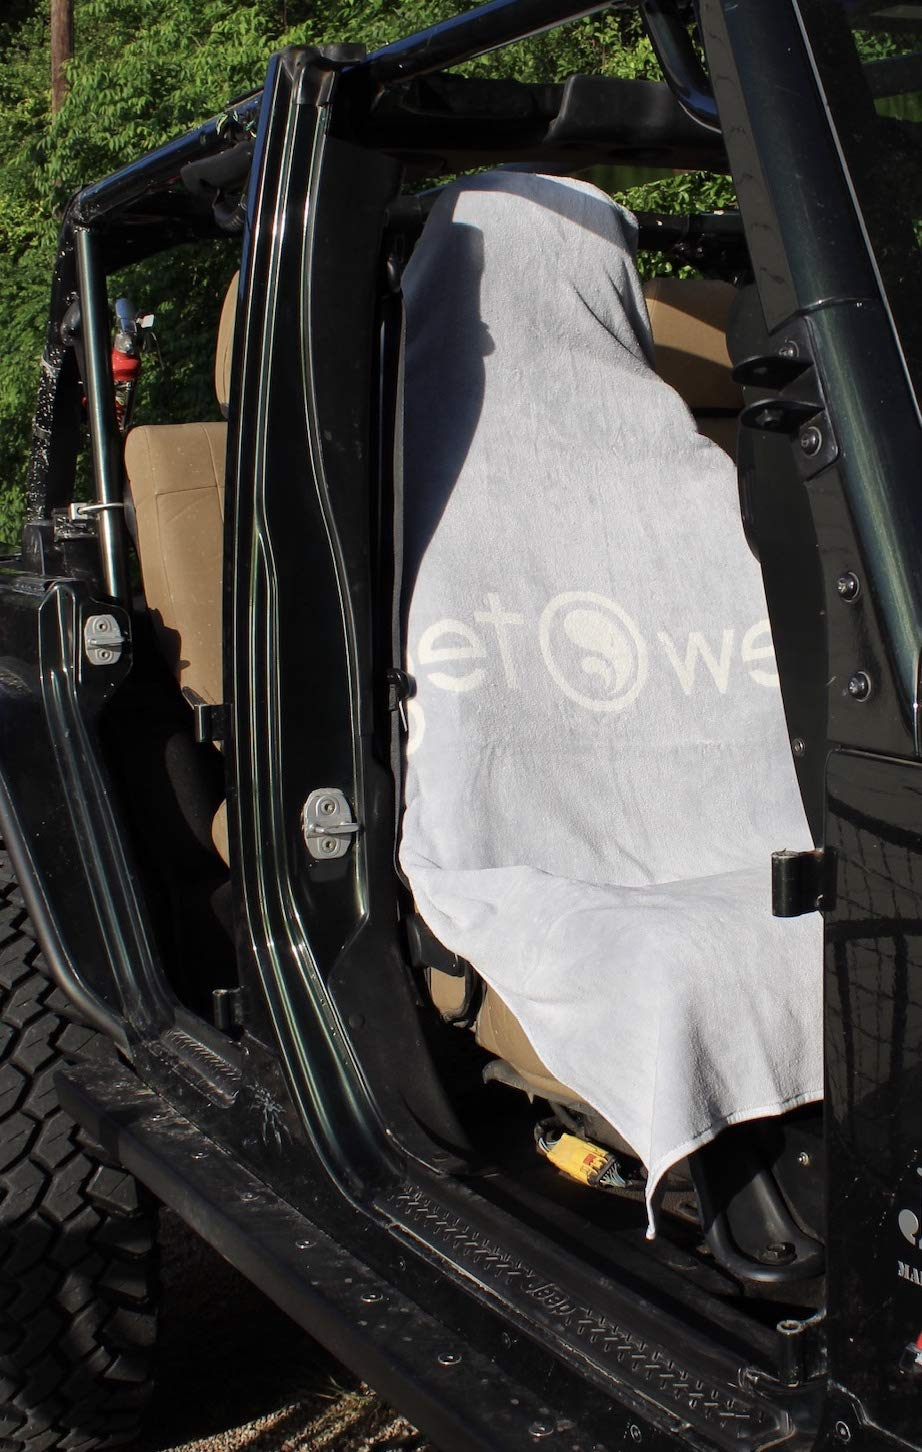 Premium Car Seat Wrap and Towel with Hood Cinch by Tew Teg | Protect Your Seats After The Gym, Runs, Swimming, Biking, Yoga, Surfing & Beach Trips | Hand-Sewn in The USA (Large, Silver & Cream)